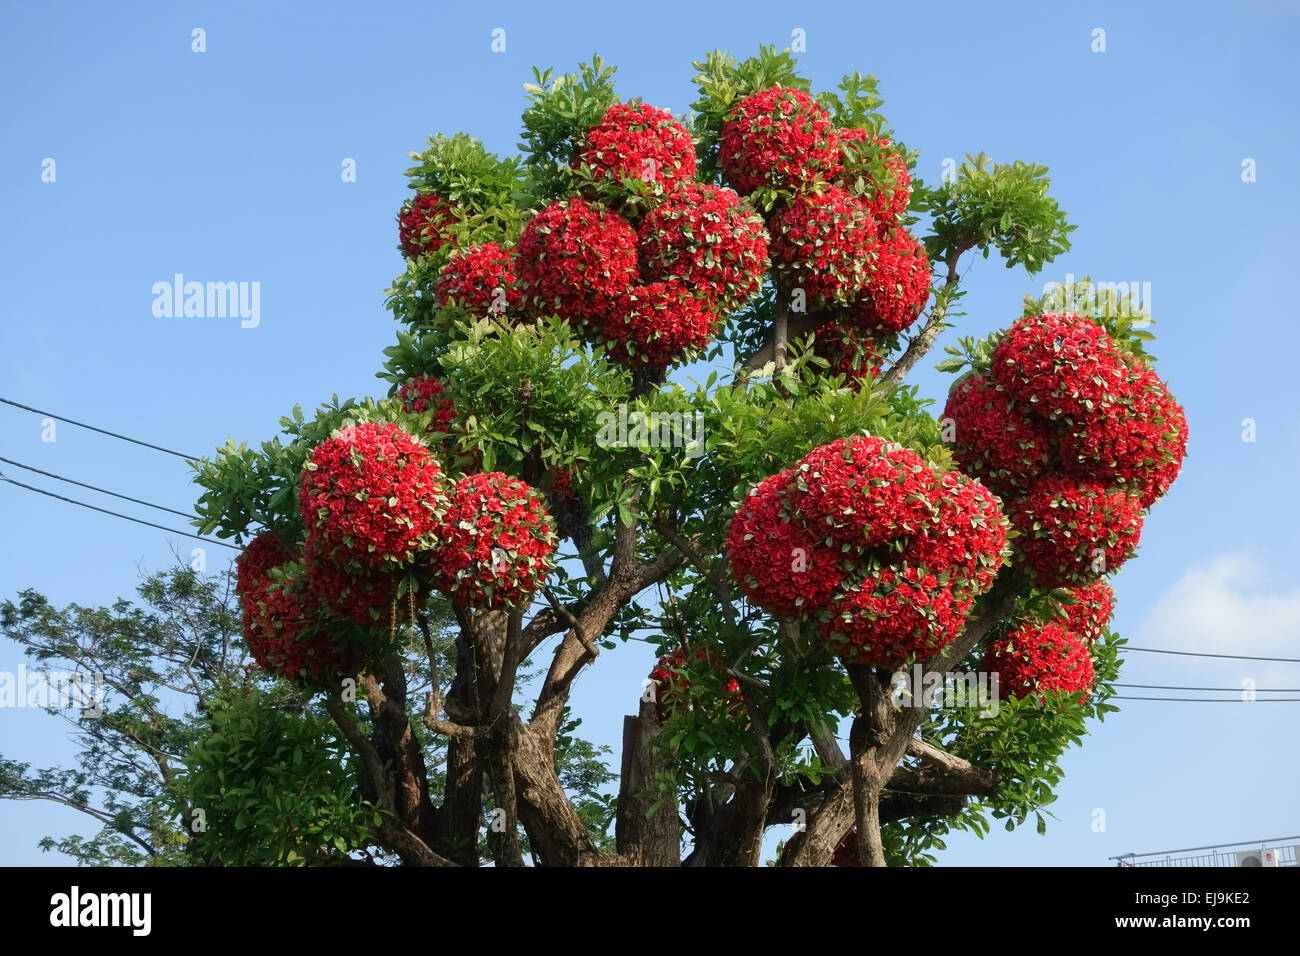 False red paper flowers decorating a real tree nonthaburi thailand false red paper flowers decorating a real tree nonthaburi thailand february mightylinksfo